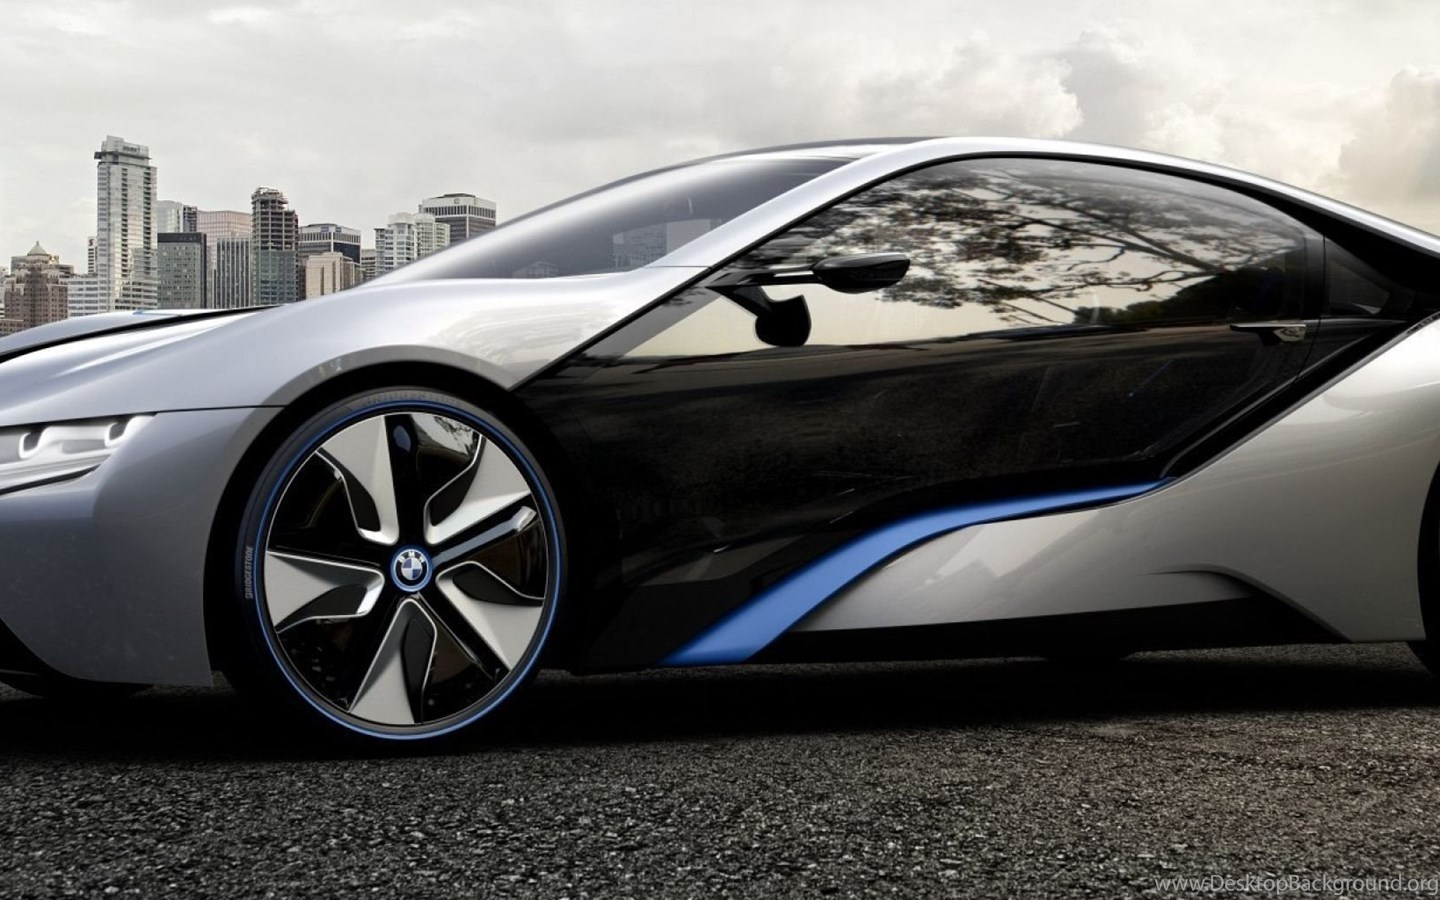 Download Wallpapers 2560x1024 Bmw I8 Concept Car Dark Dual